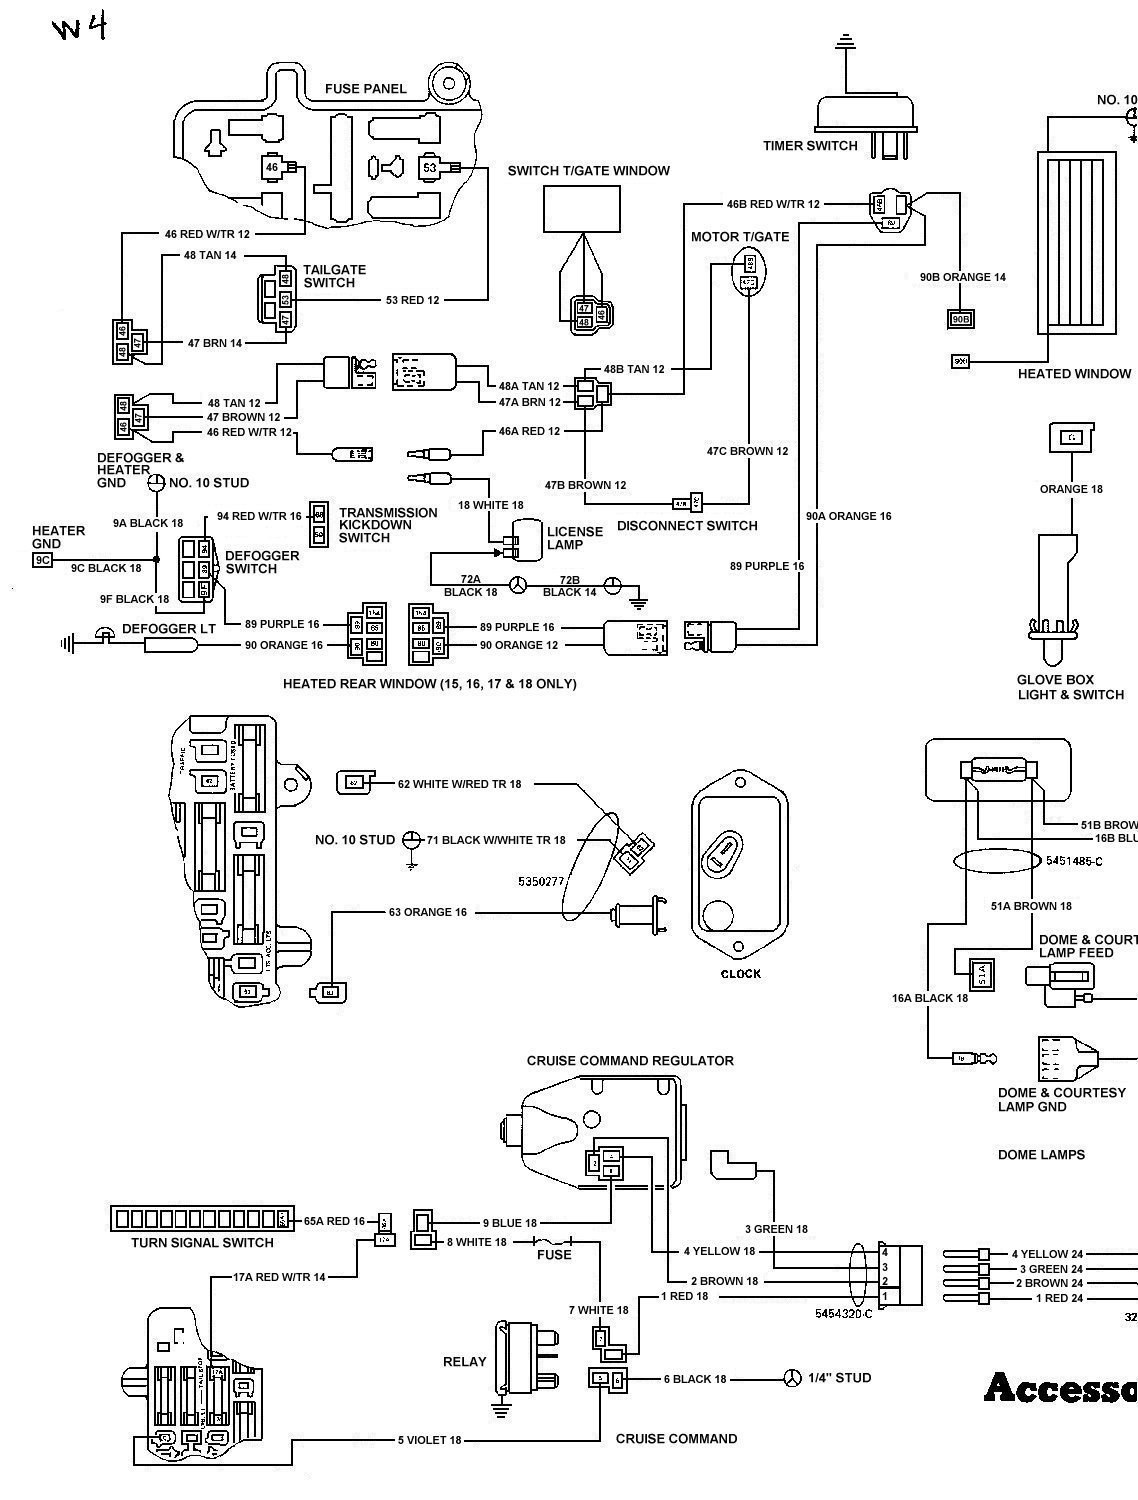 1985 Jeep Cj7 Fuse Box Diagram Trusted Wiring 25 Images 1980